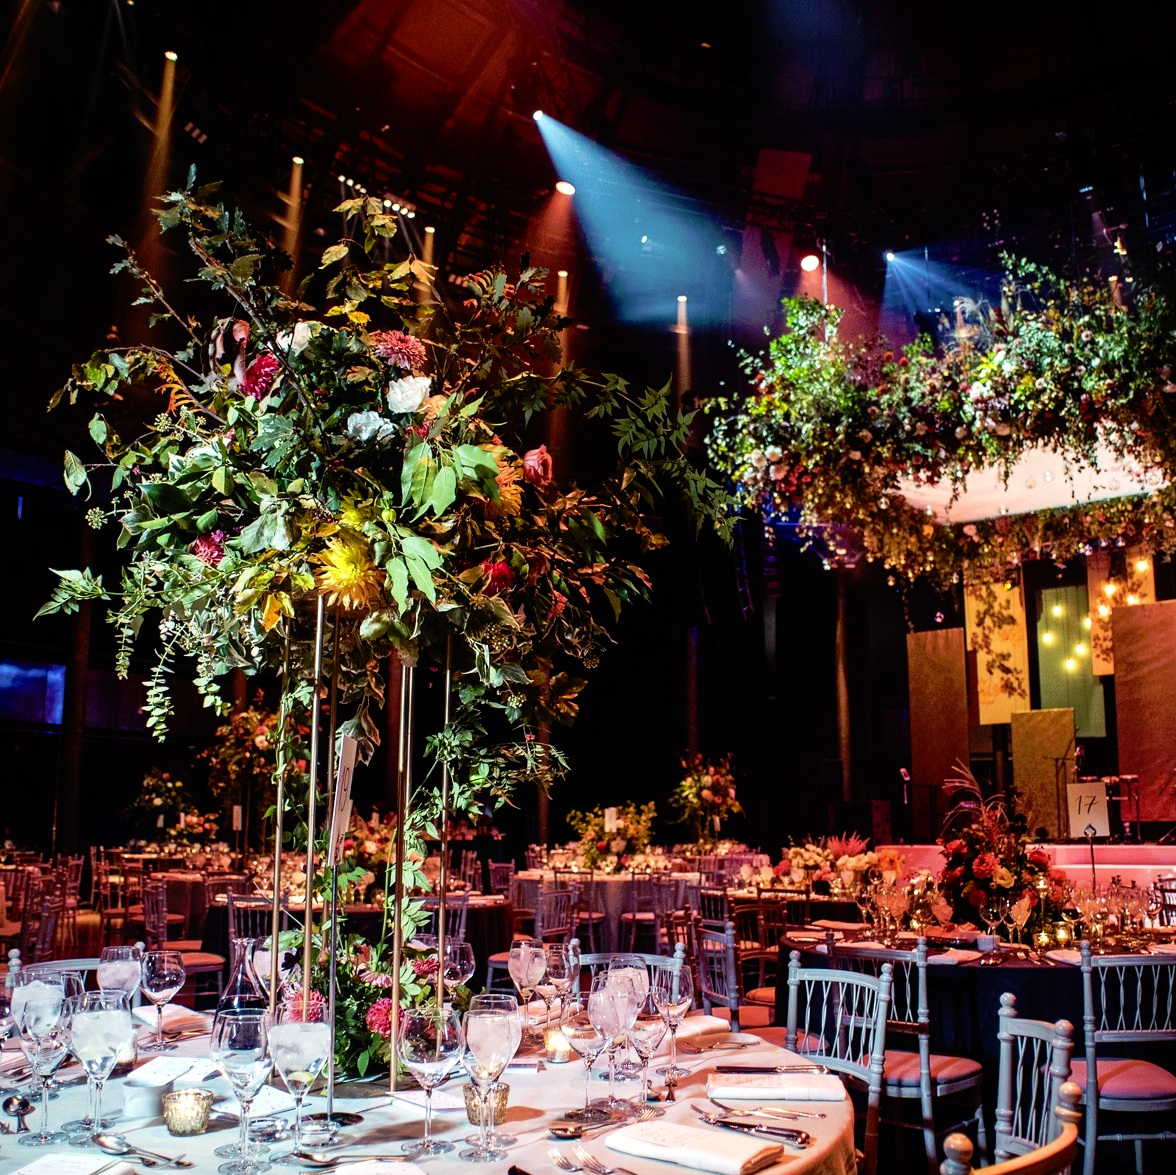 TABLE ARRANGEMENT AND FLORAL CANOPY